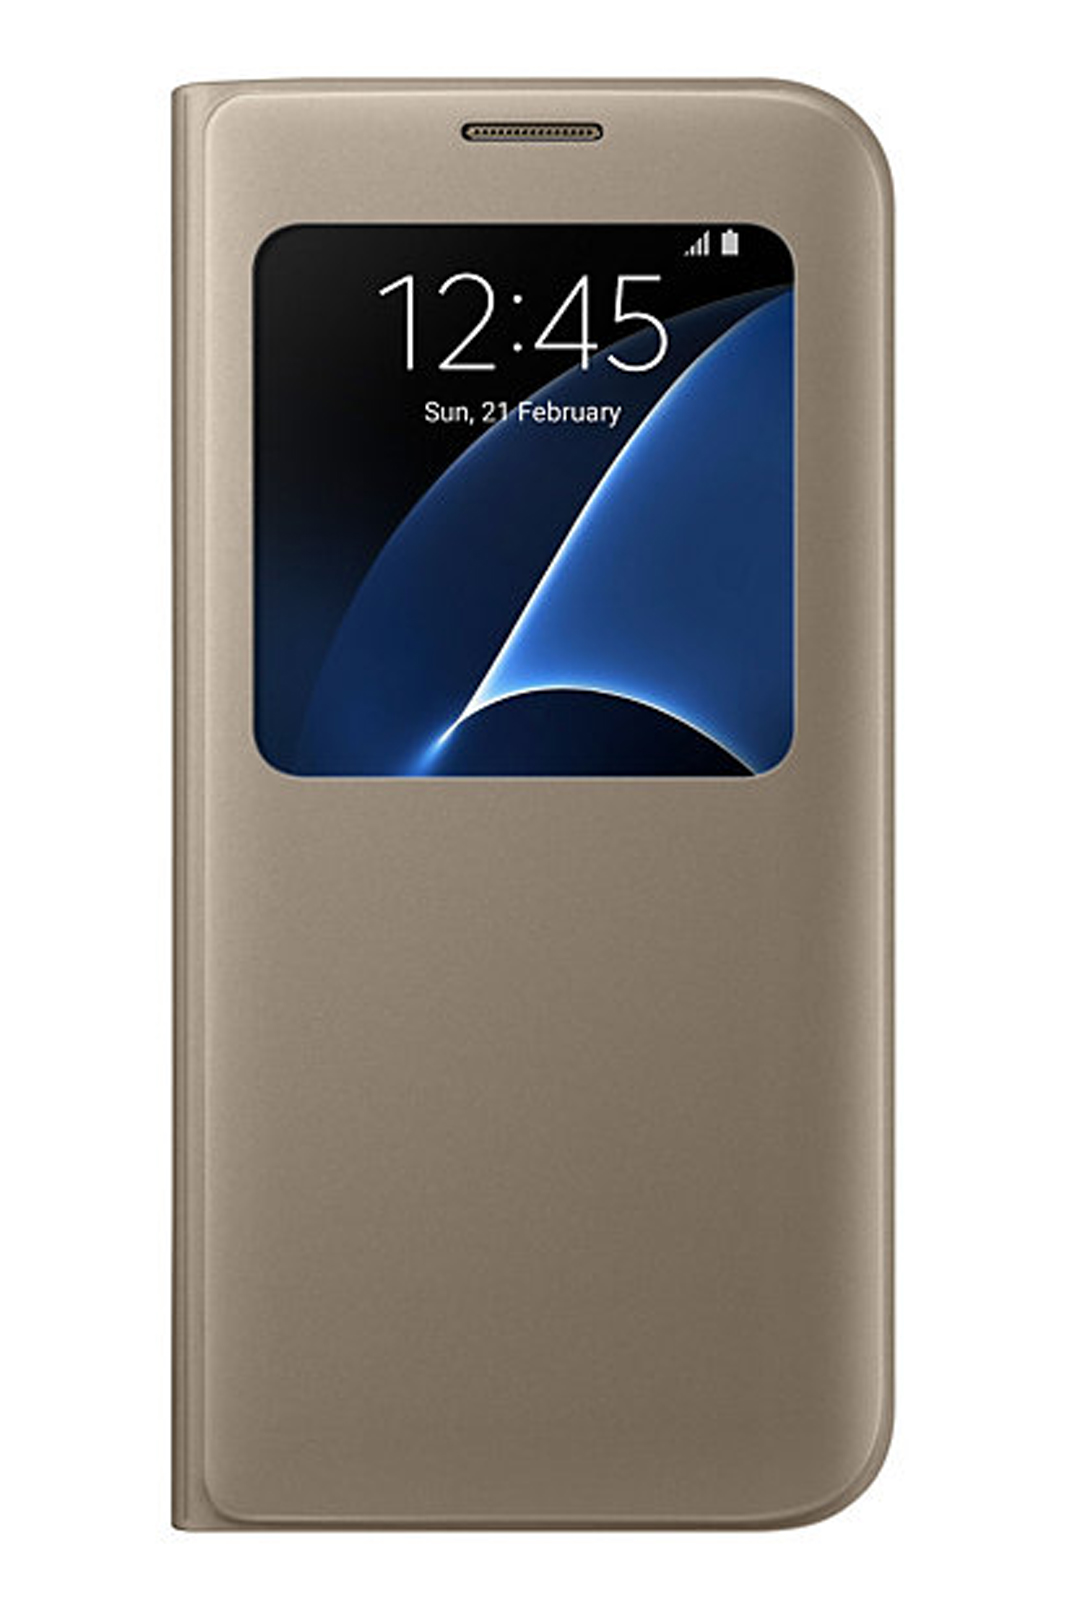 low priced 9f2b4 1fc20 Details about Official Samsung Galaxy S7 Edge Gold S View Cover / Case -  EF-CG935PFEGWW